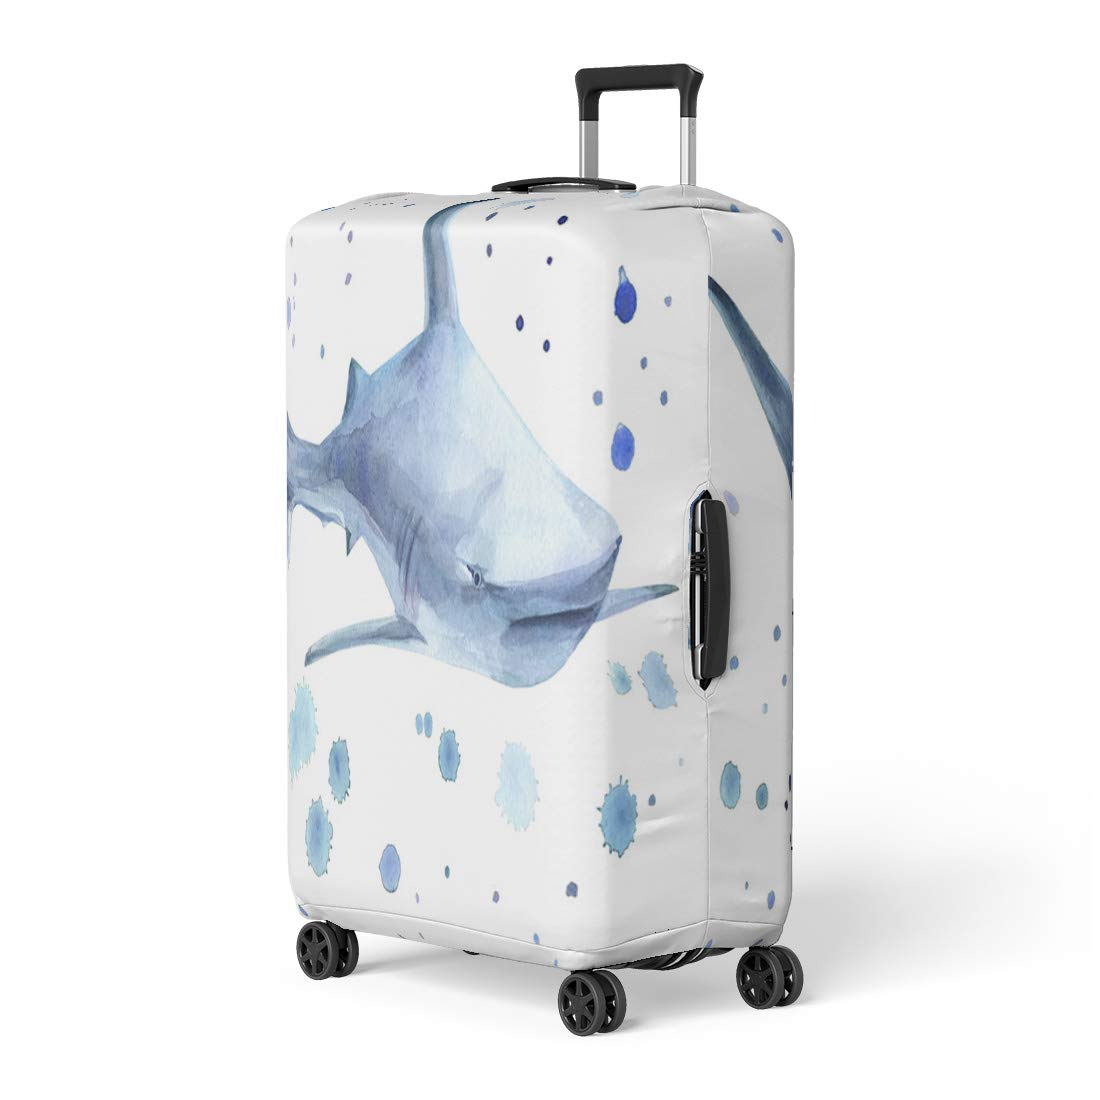 Semtomn Luggage Cover Blue Animal Shark and Watercolor Spray on Australia Beautiful Travel Suitcase Cover Protector Baggage Case Fits 26-28 Inch